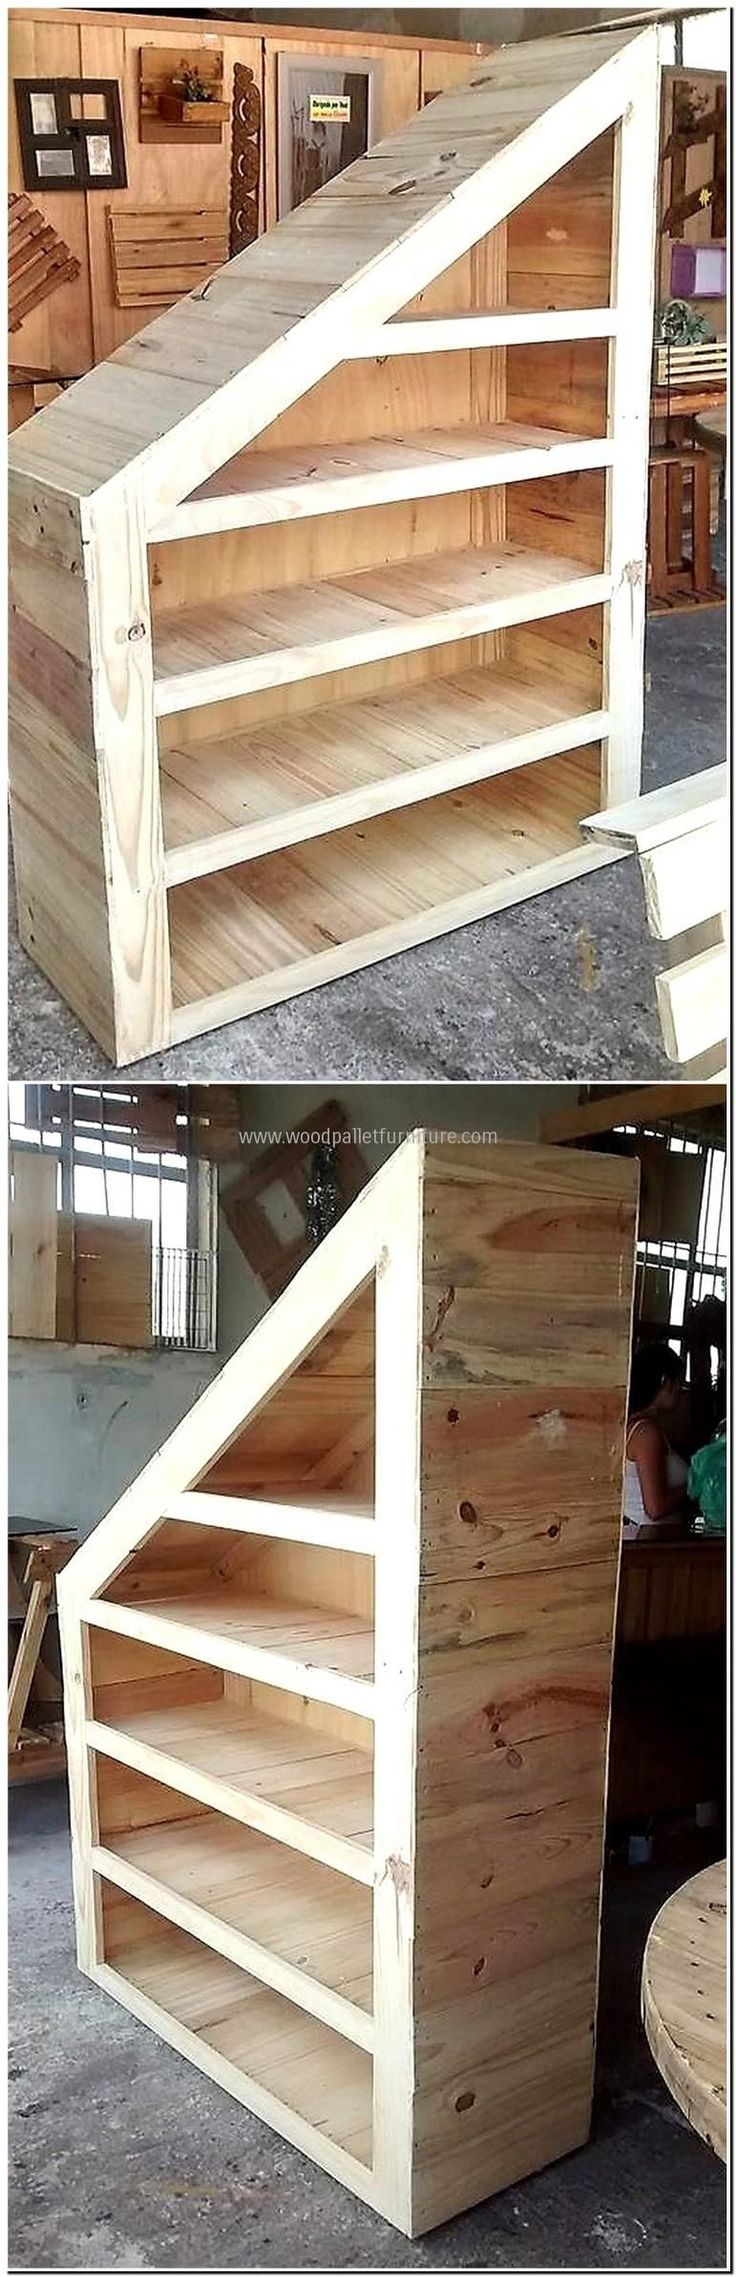 Some people are wise enough to use every space at home like the one who created this upcycled wood pallet wardrobe for under the stairs. For the home with less space, it is a good idea for the storage of the items in an organized way. This idea can be used for placing the shoes or other things.